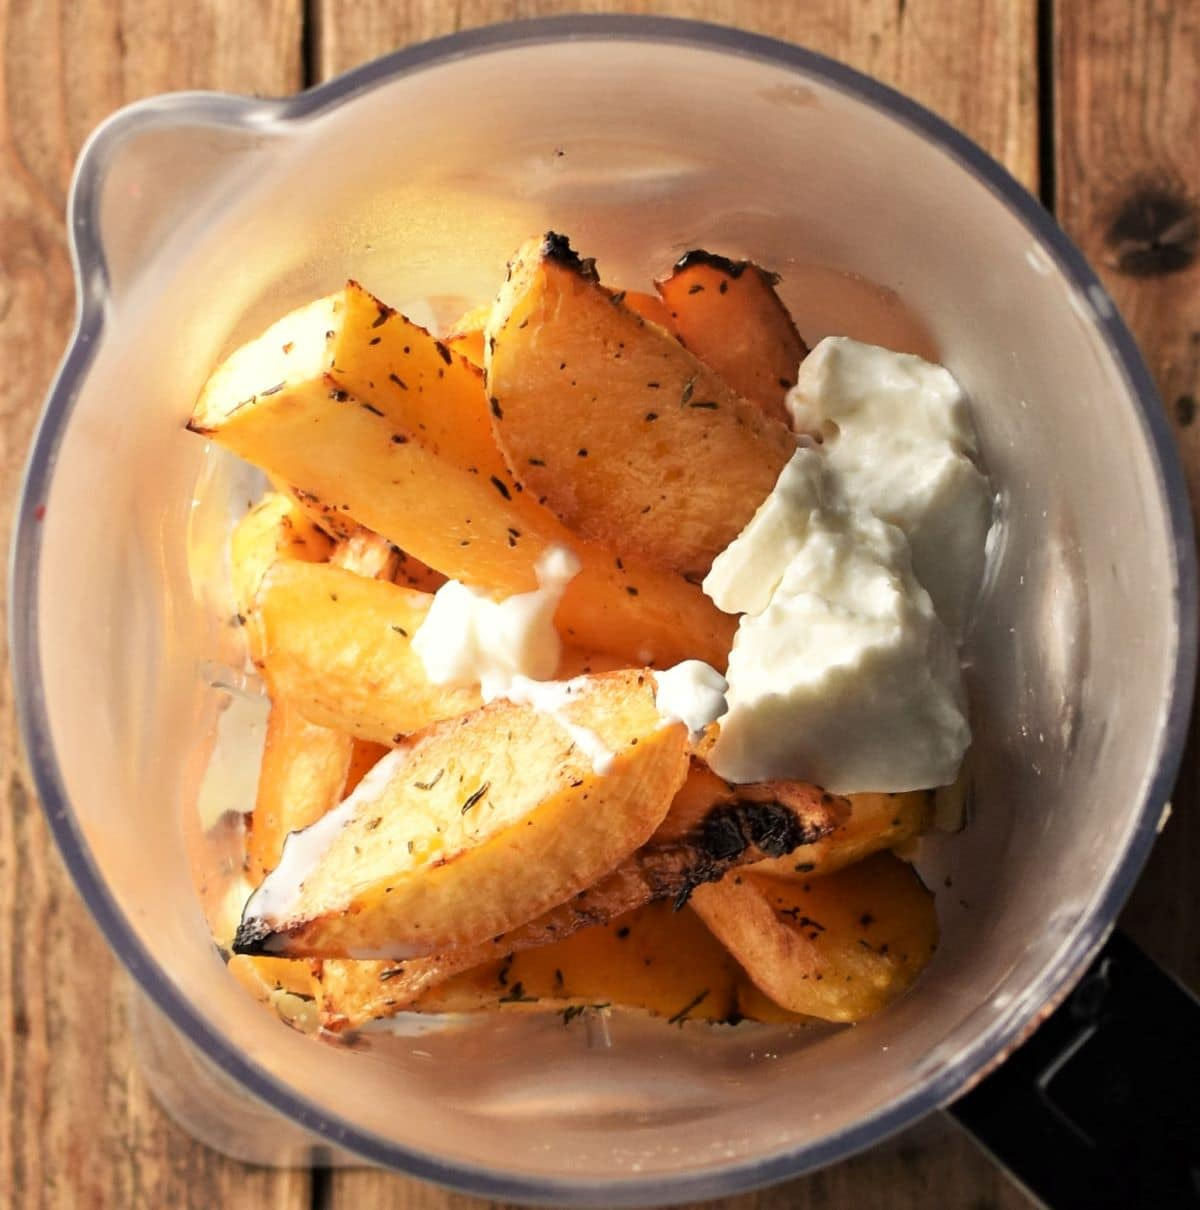 Rutabaga wedges with yogurt in blender.